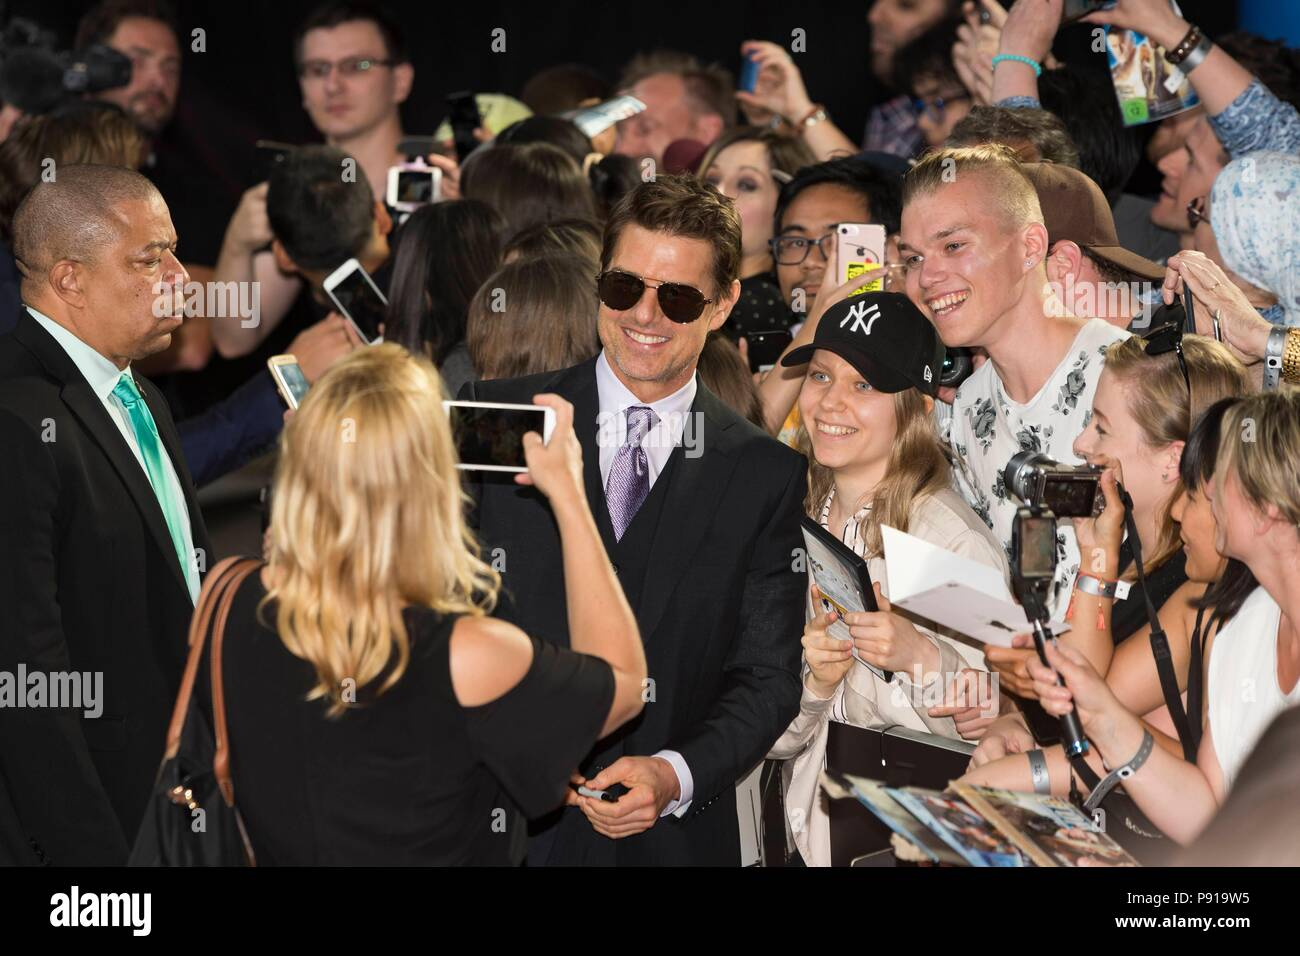 Tom Cruise attends MISSION: IMPOSSIBLE - FALLOUT, UK Premiere. London, UK. 13/07/2018 | usage worldwide Stock Photo